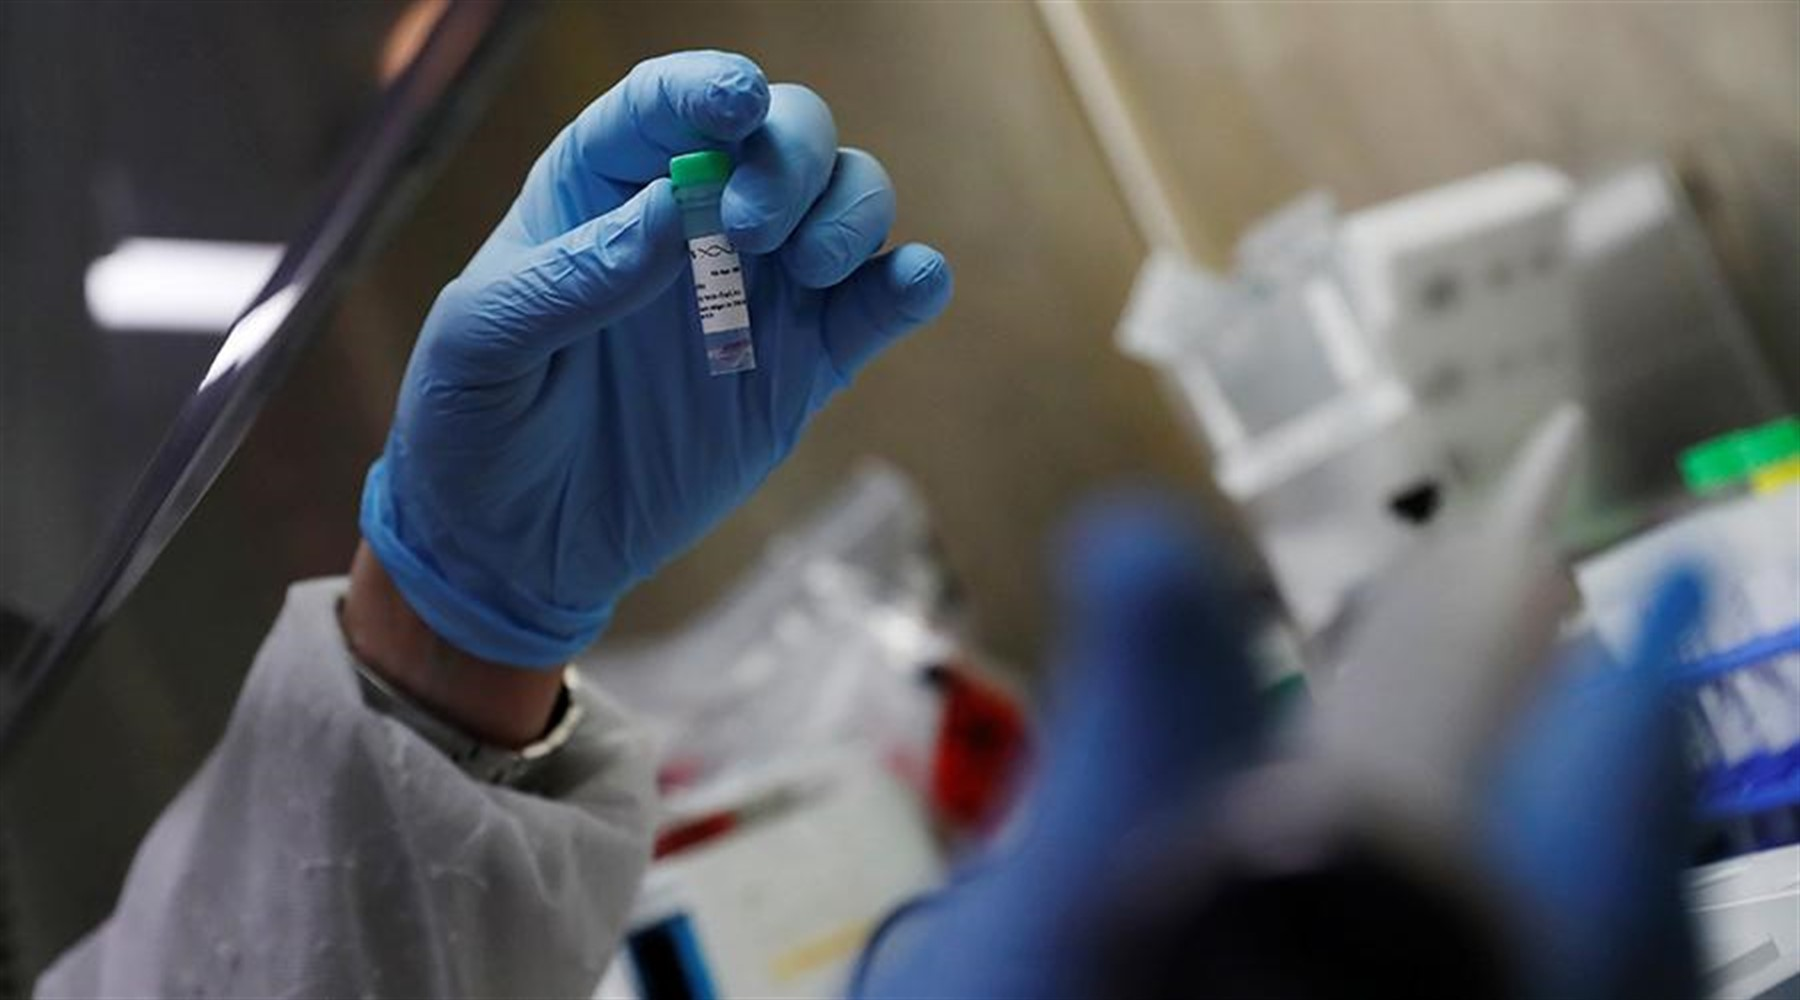 Scientists made the discovery on Friday, June 19, saying the vaccine is being developed locally in Africa for Africans, but will work on other continents when introduced,